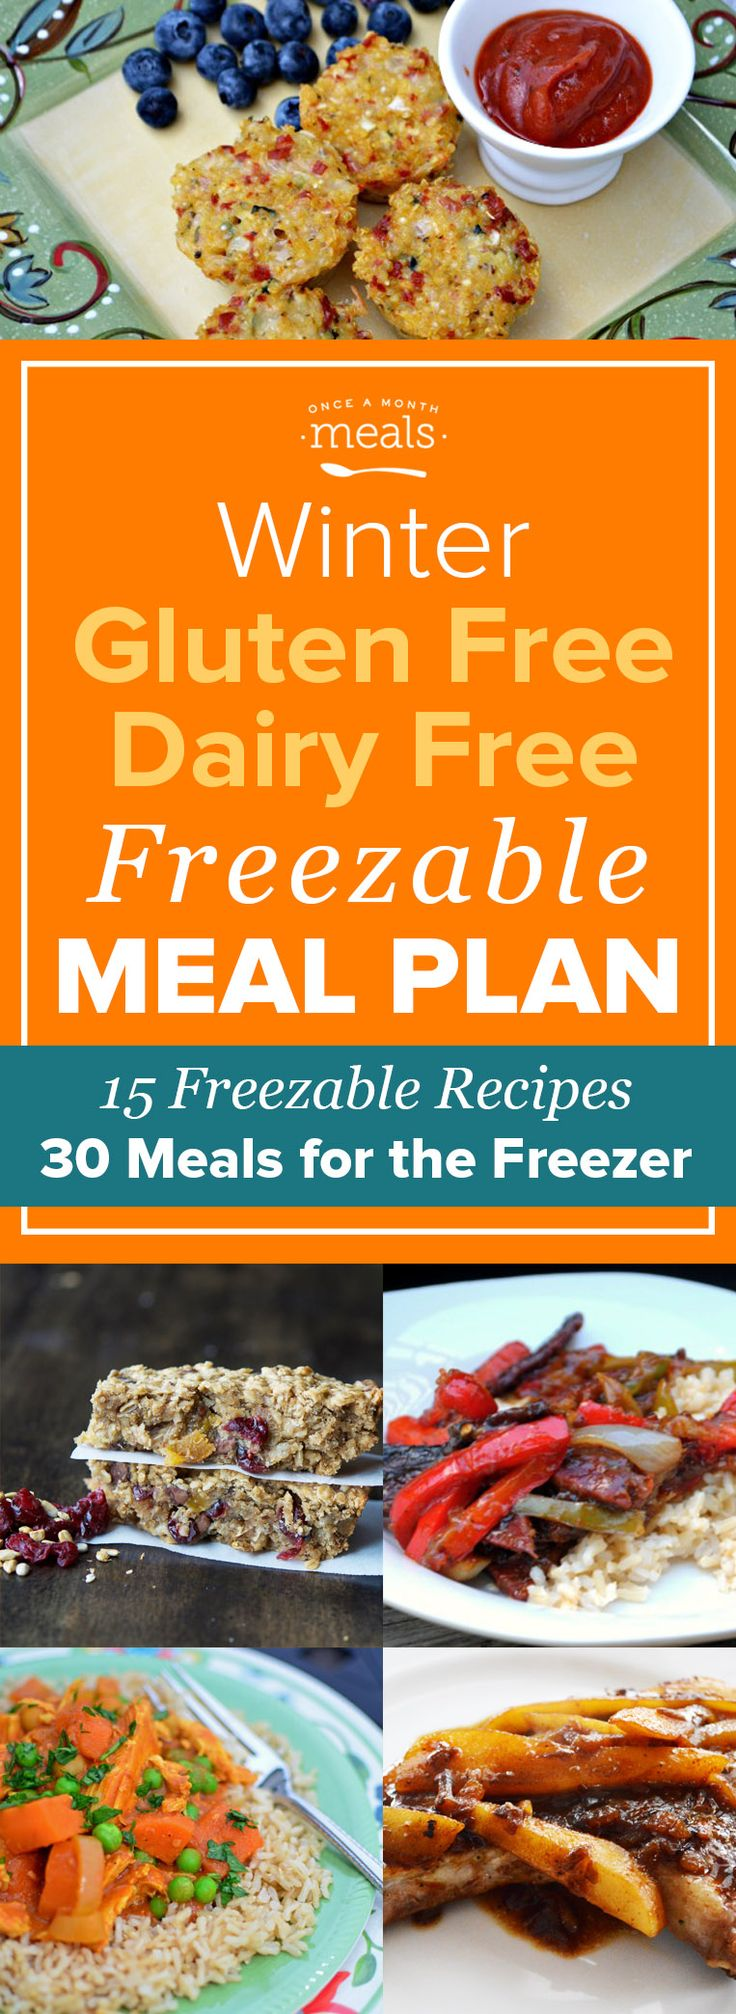 This Winter Gluten Free Dairy Free Freezer Menu is an ALL STAR menu of reader favorites.